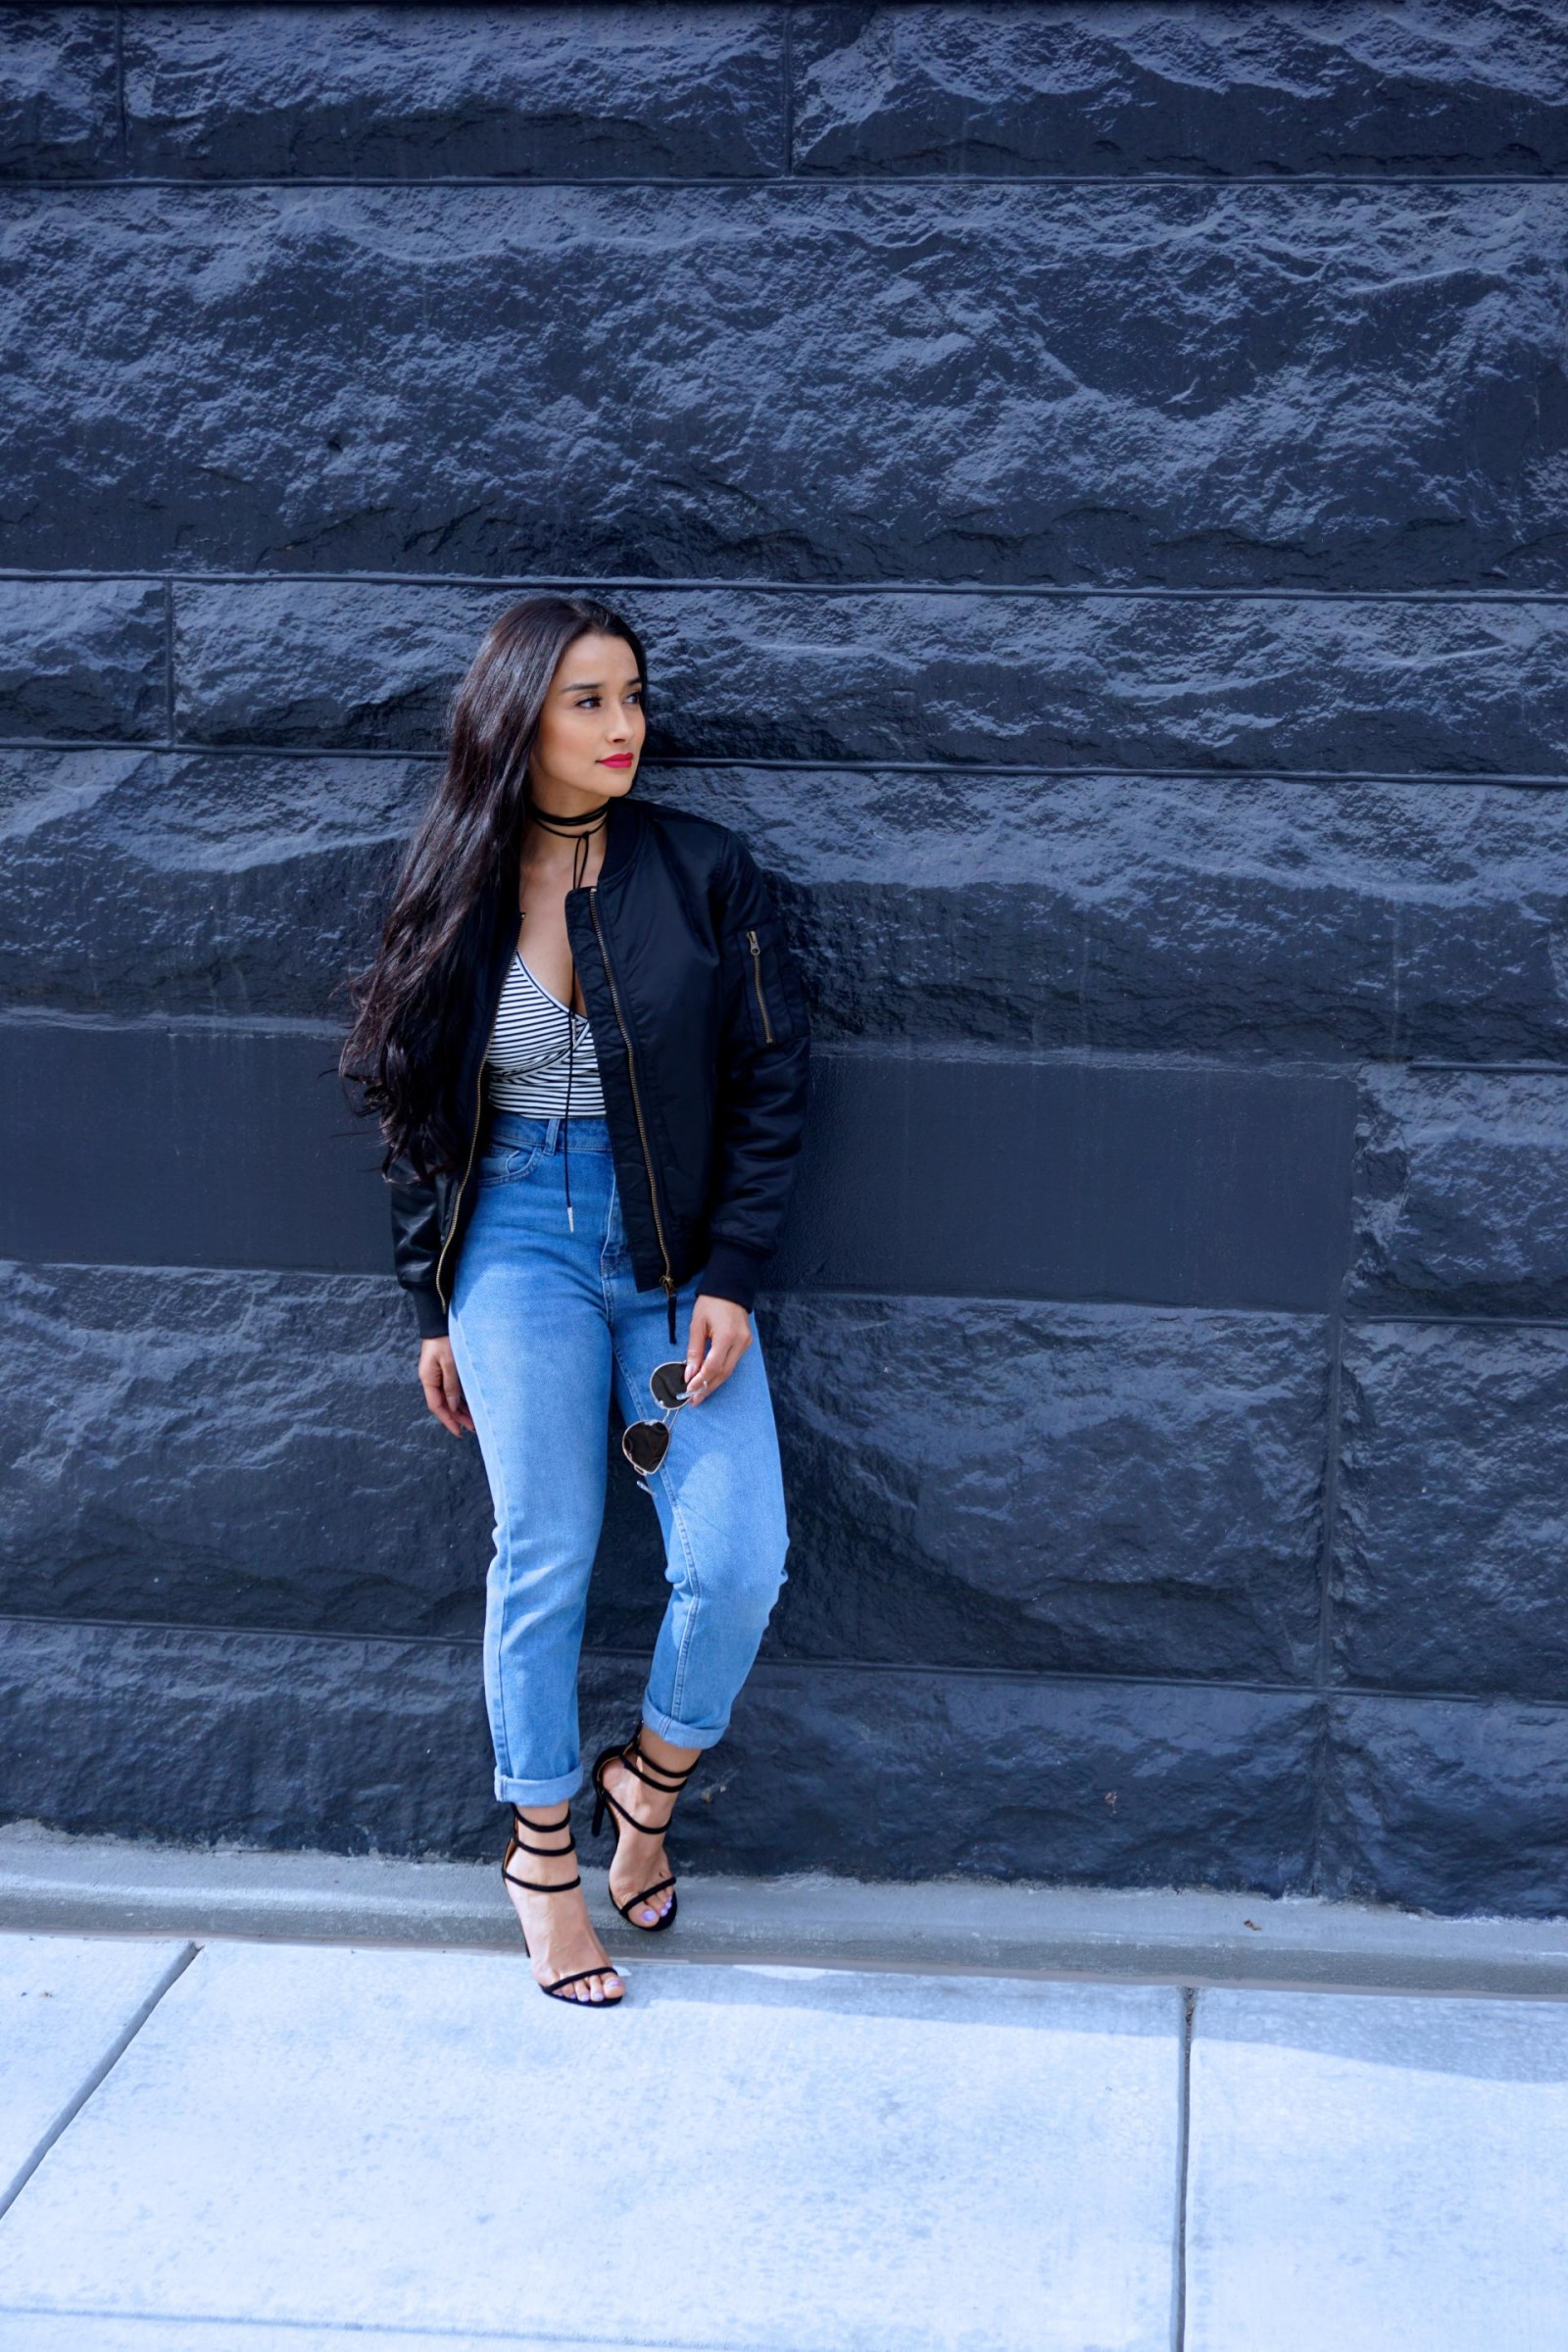 Urban Outfitters, Girlfriend Jeans, choker, forever21, stripes, black and white stripes, simmi heels, black heels, black bomber jacket